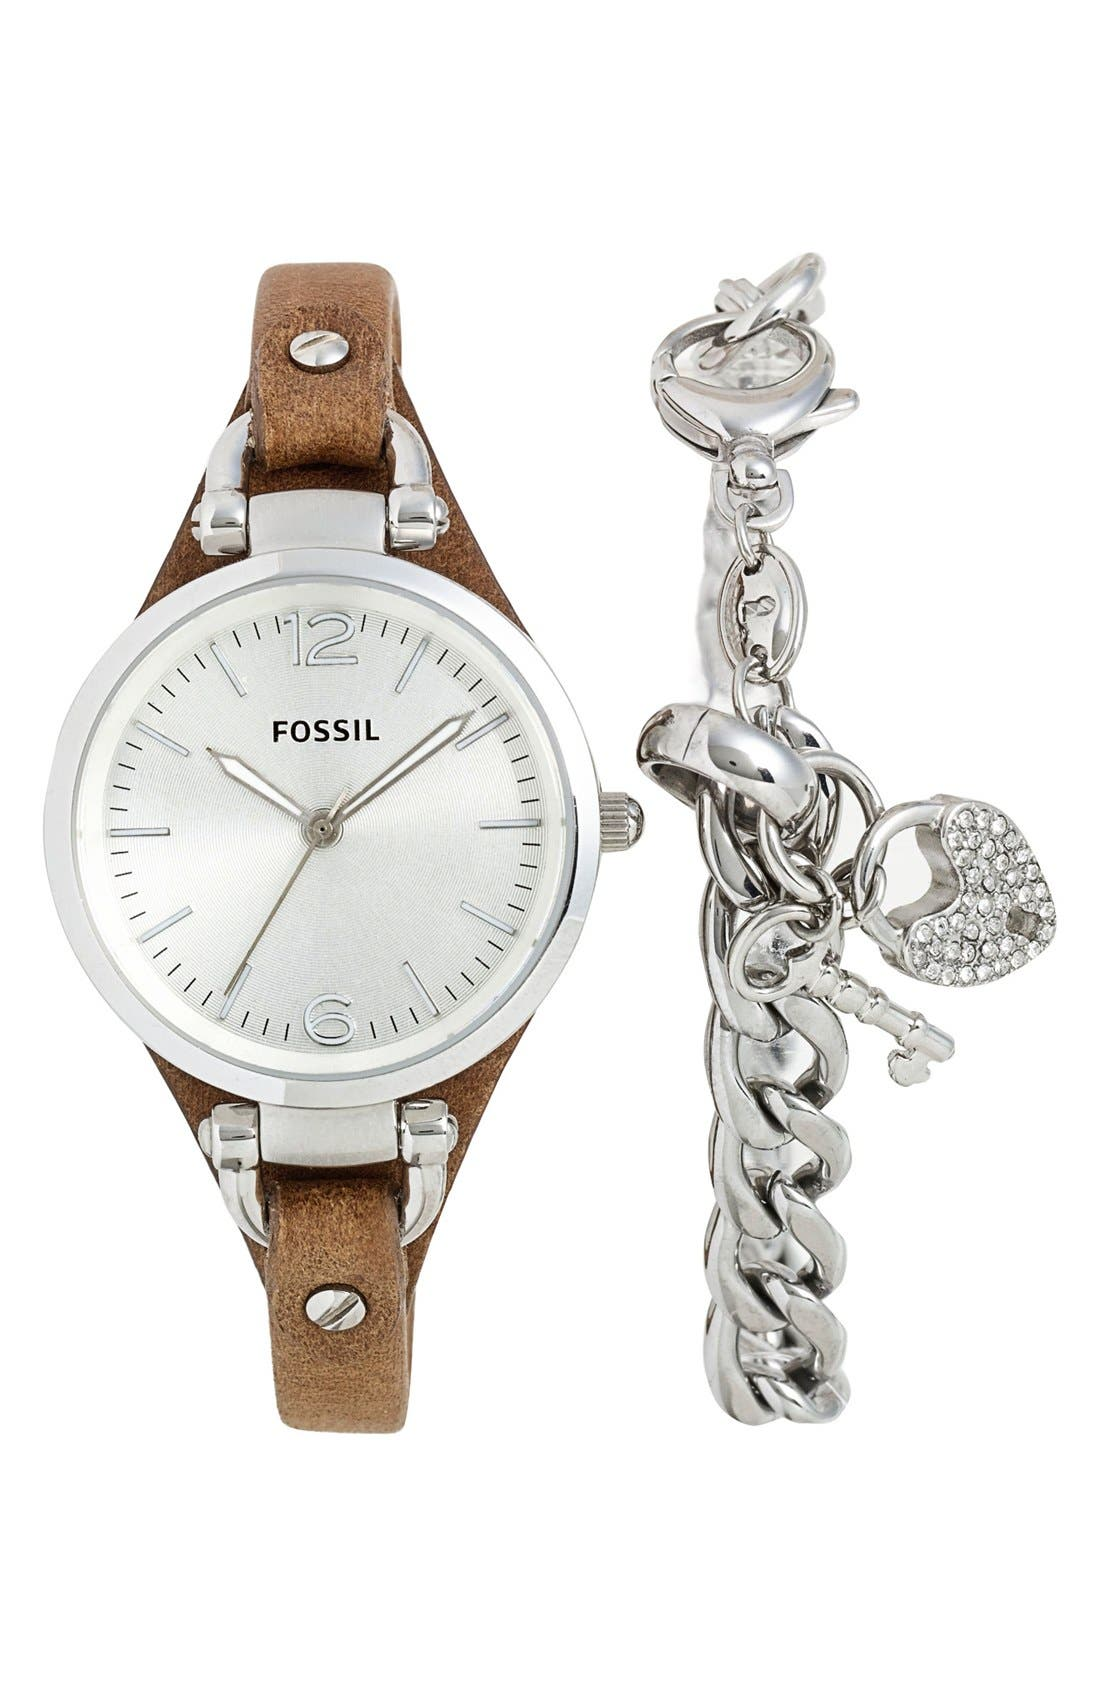 Alternate Image 1 Selected - Fossil 'Georgia' Leather Strap Watch & Charm Bracelet Set, 32mm ($123 Value)